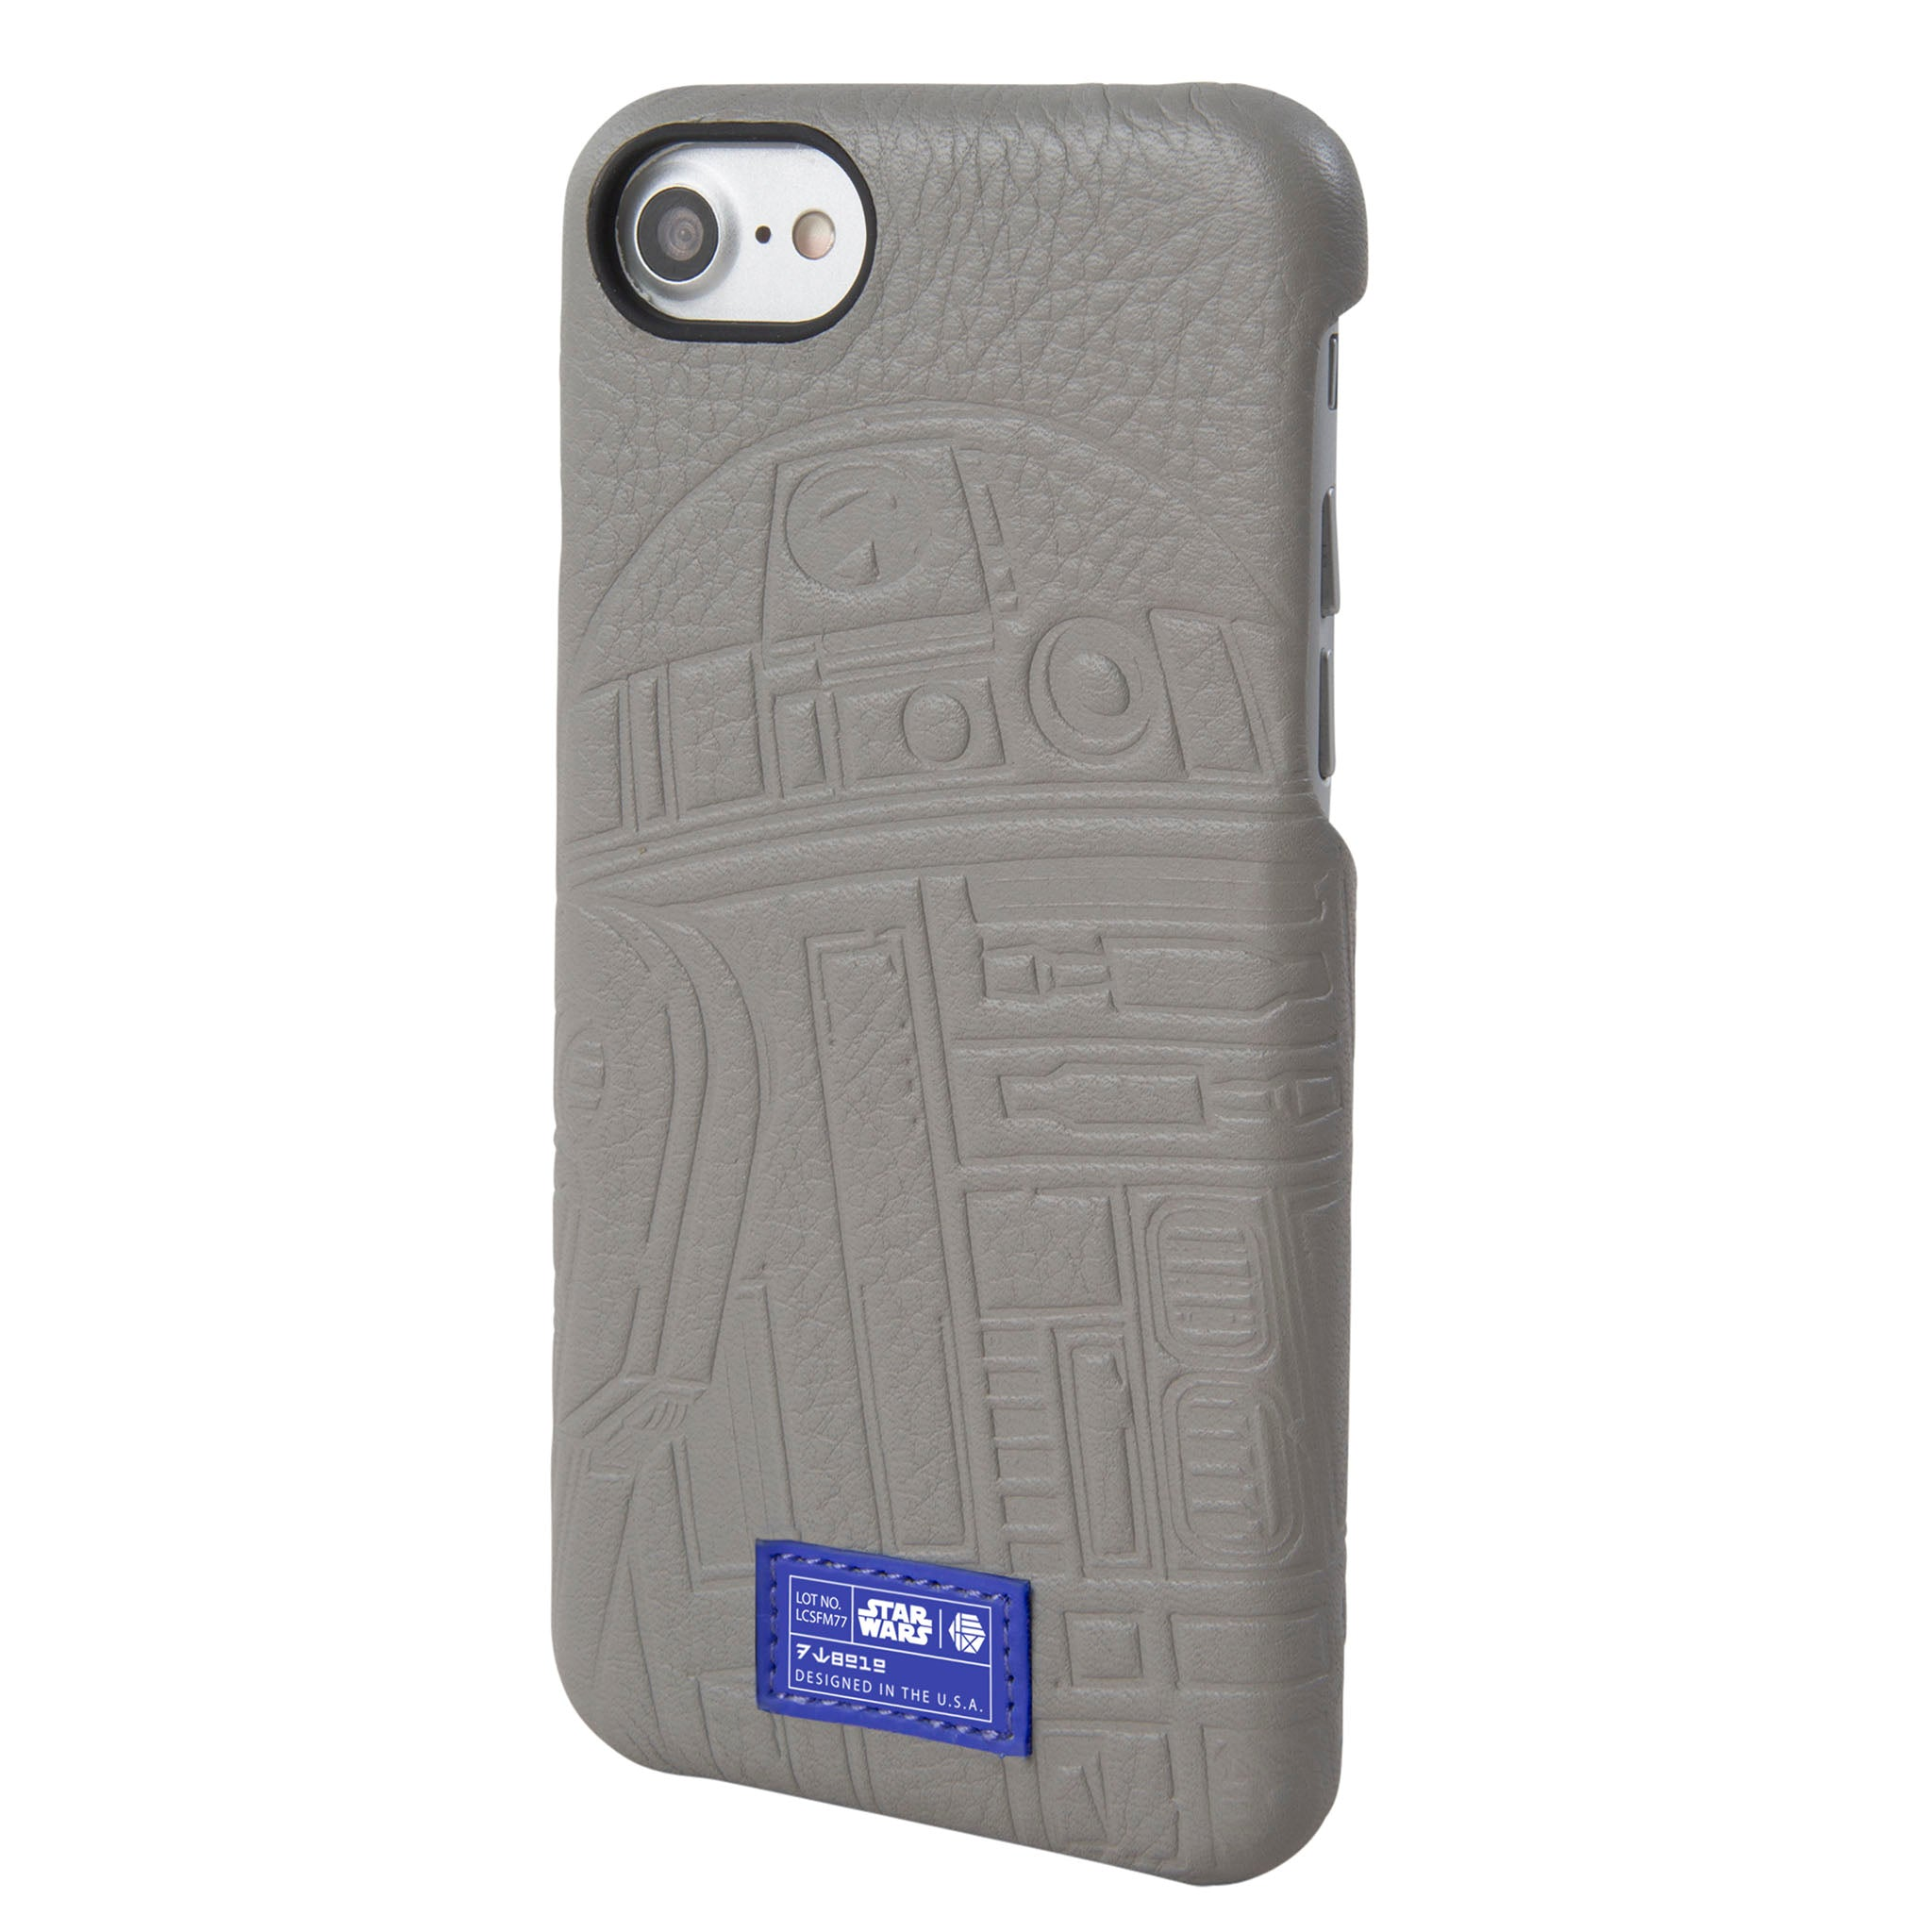 separation shoes 5ef8f 169c9 Star Wars R2D2 Snap Case for iPhone 8